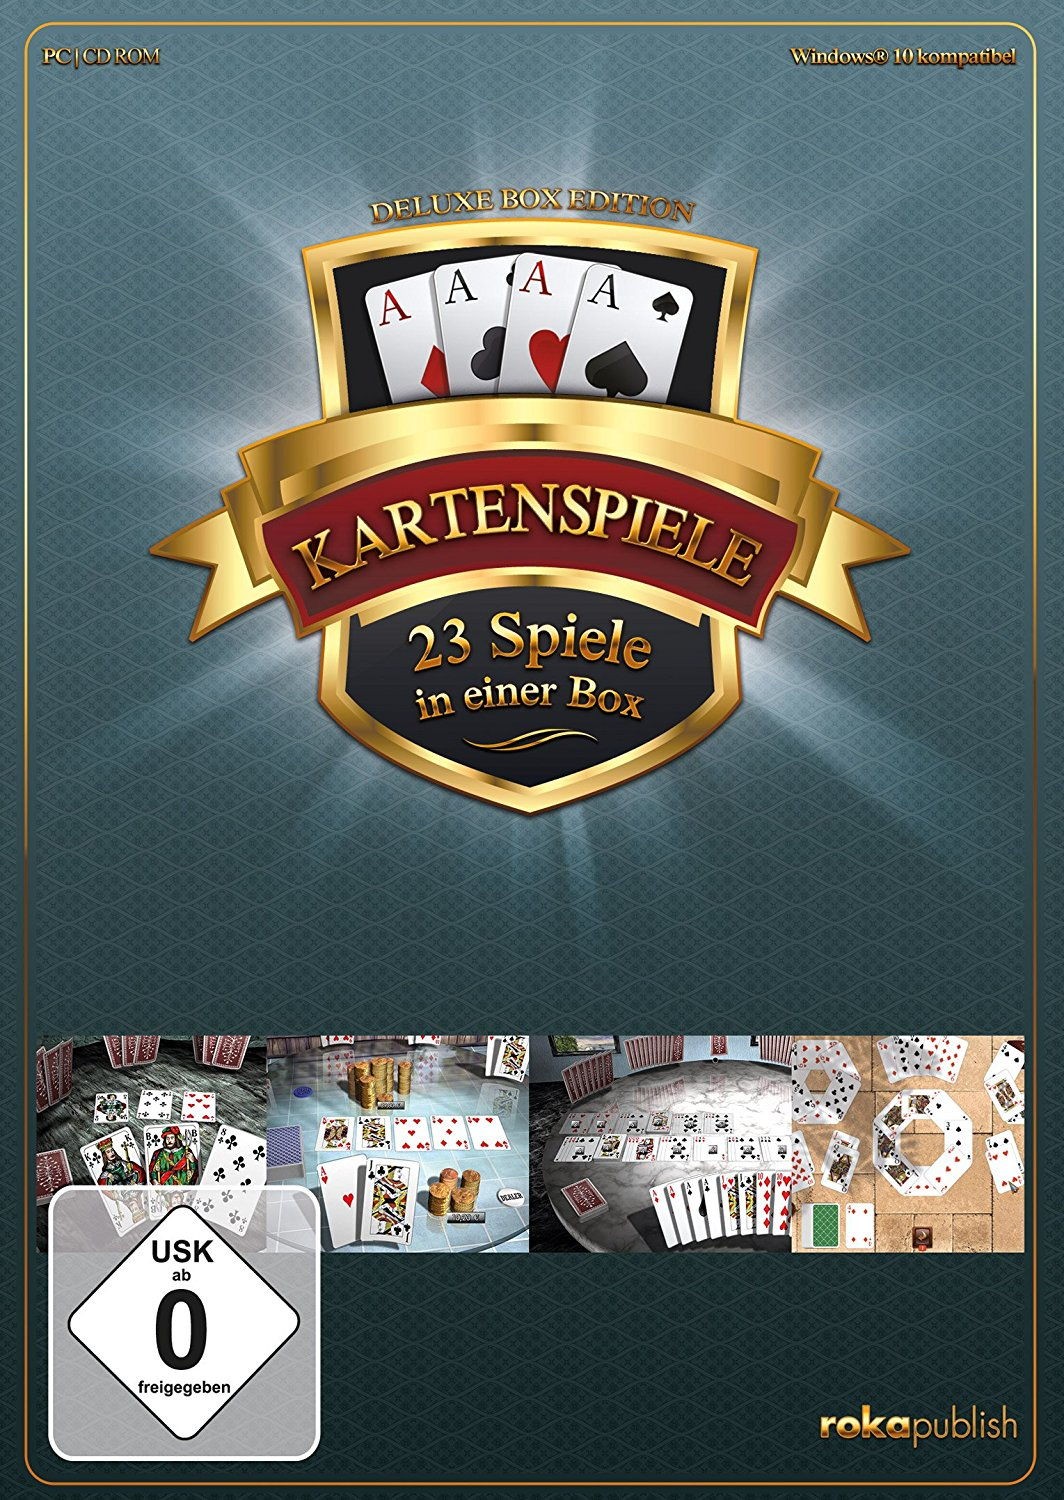 Kartenspiele 23 in 1 - Deluxe Box Edition